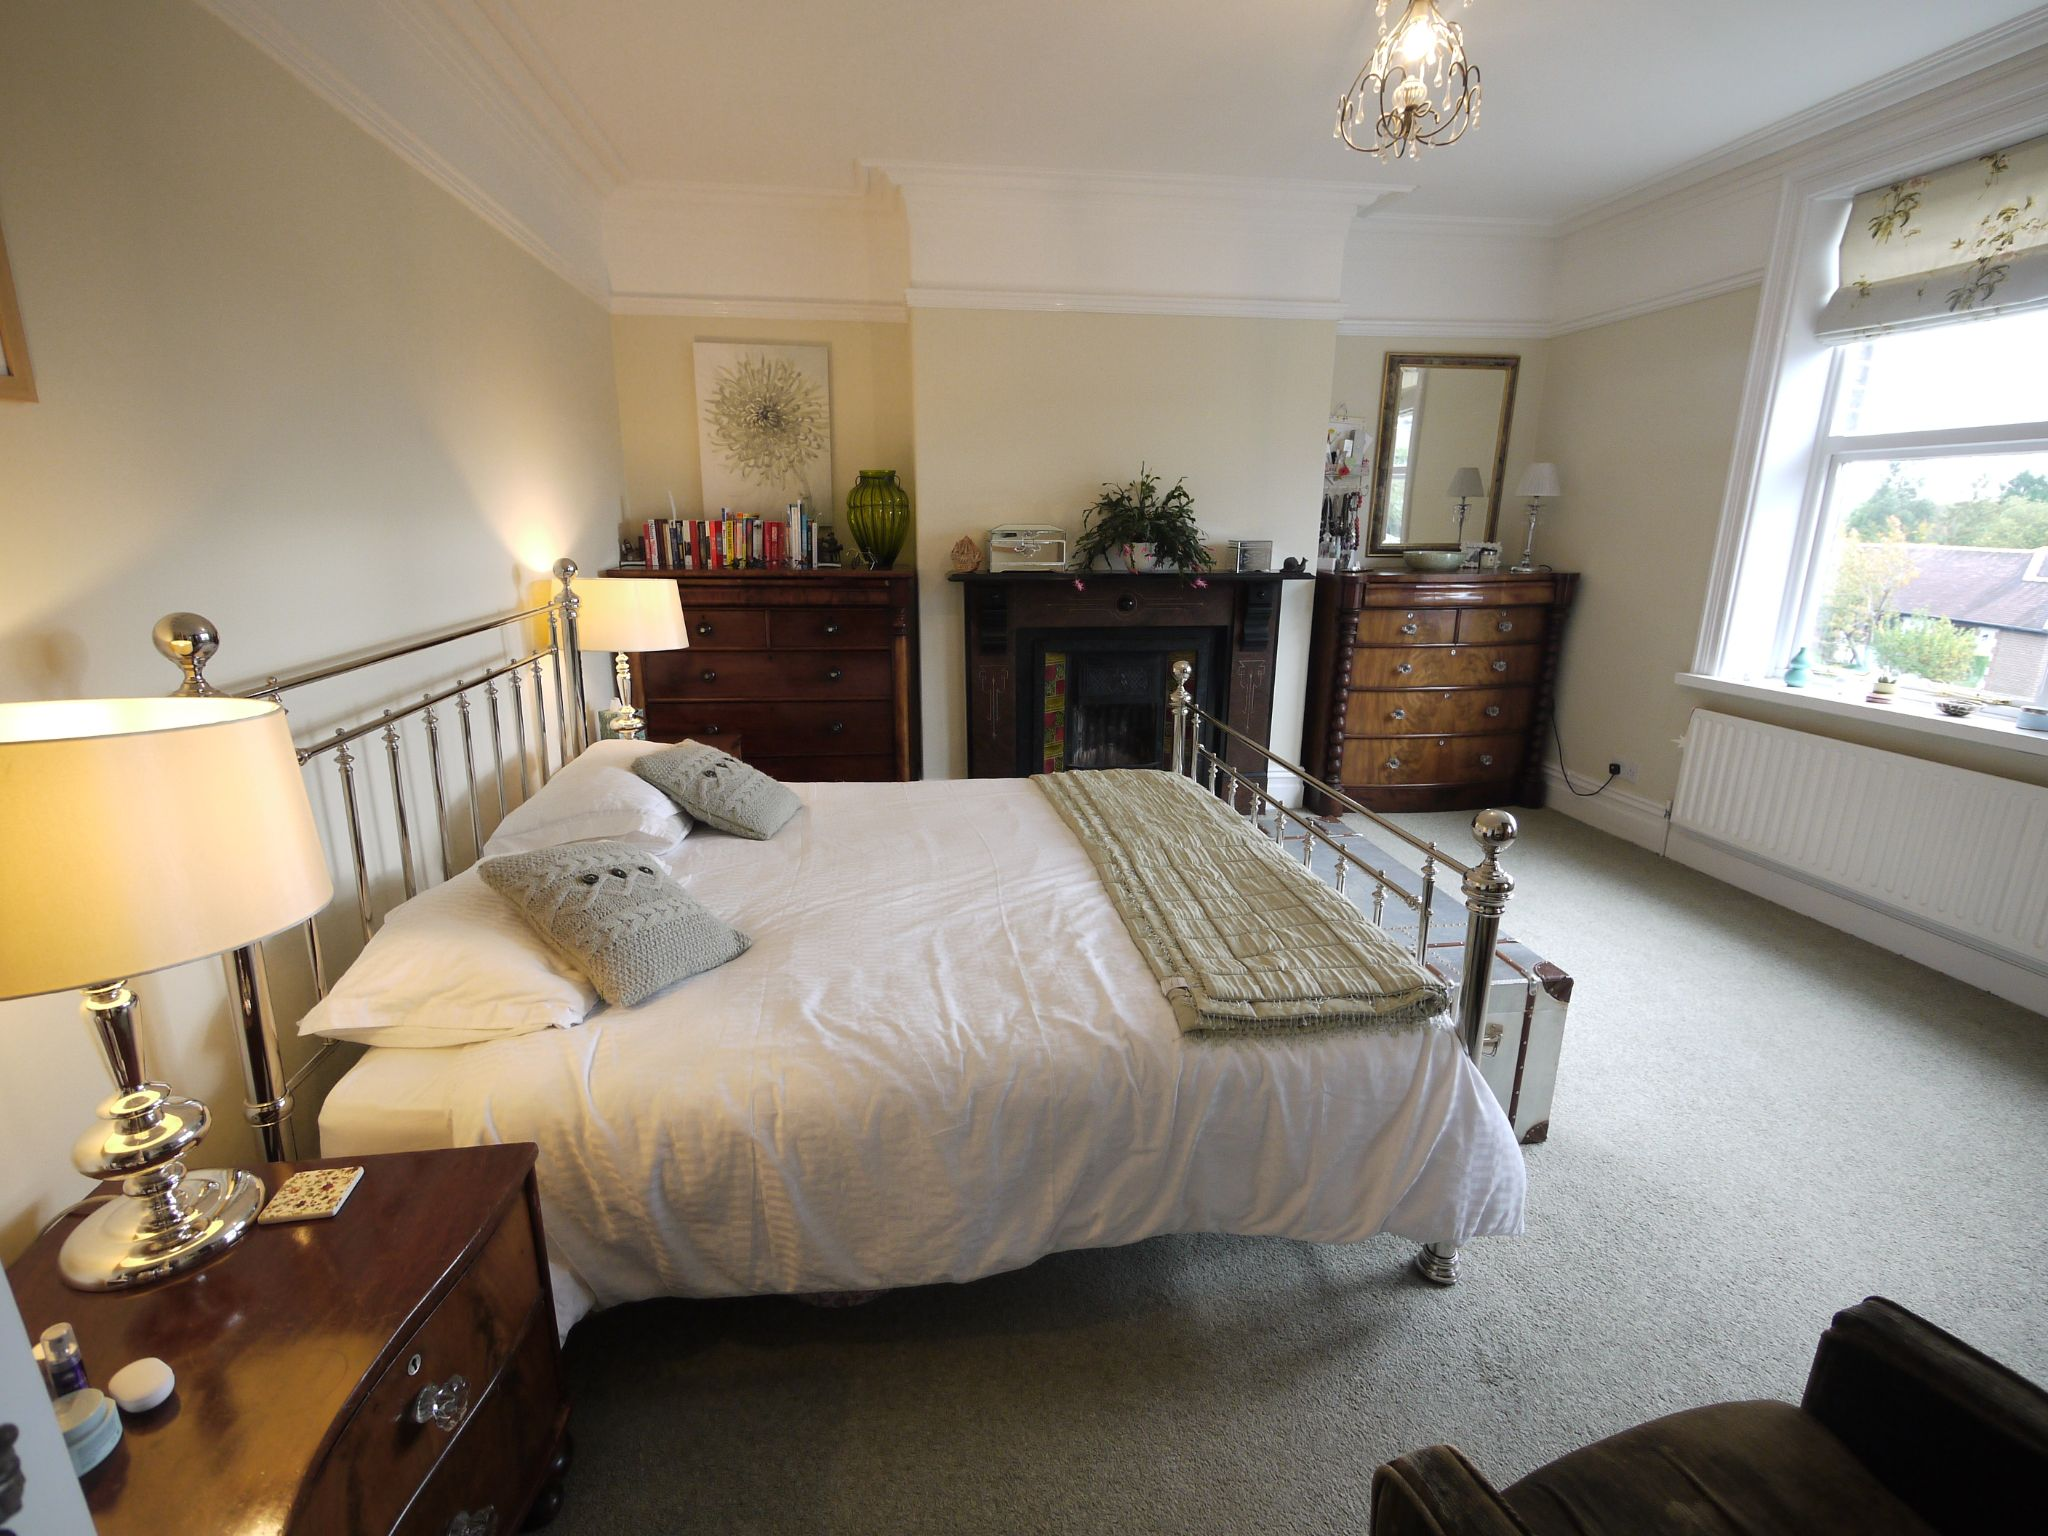 4 bedroom end terraced house SSTC in Halifax - Photograph 9.